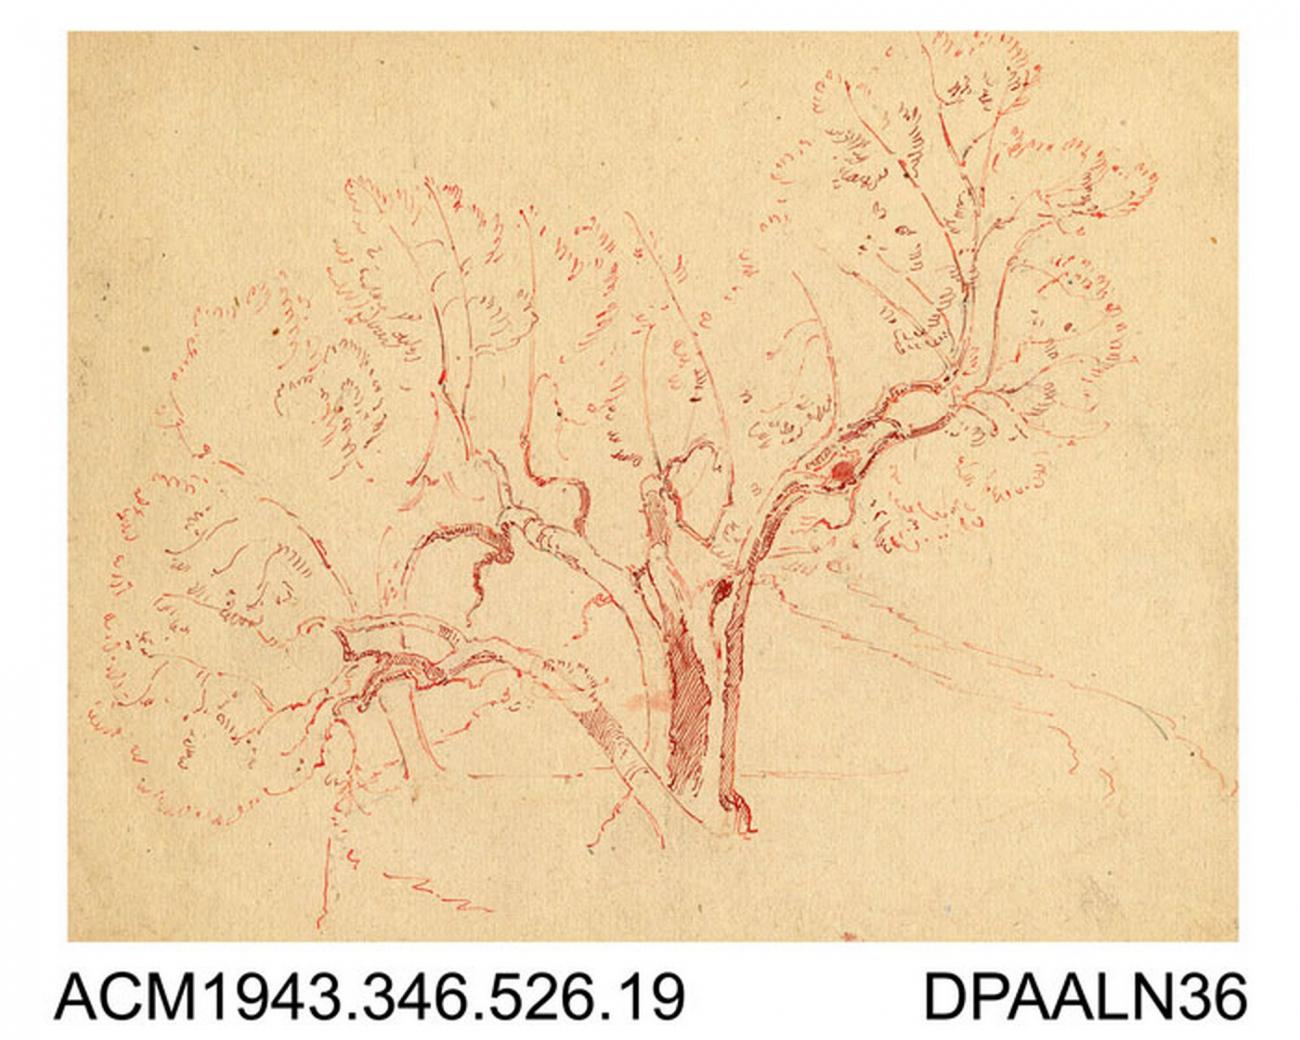 Drawing Pen And Ink Drawing In Red On Paper Tree Sketch Drawn By William Herbert Allen Of Farnham Surrey 1880s 1940s